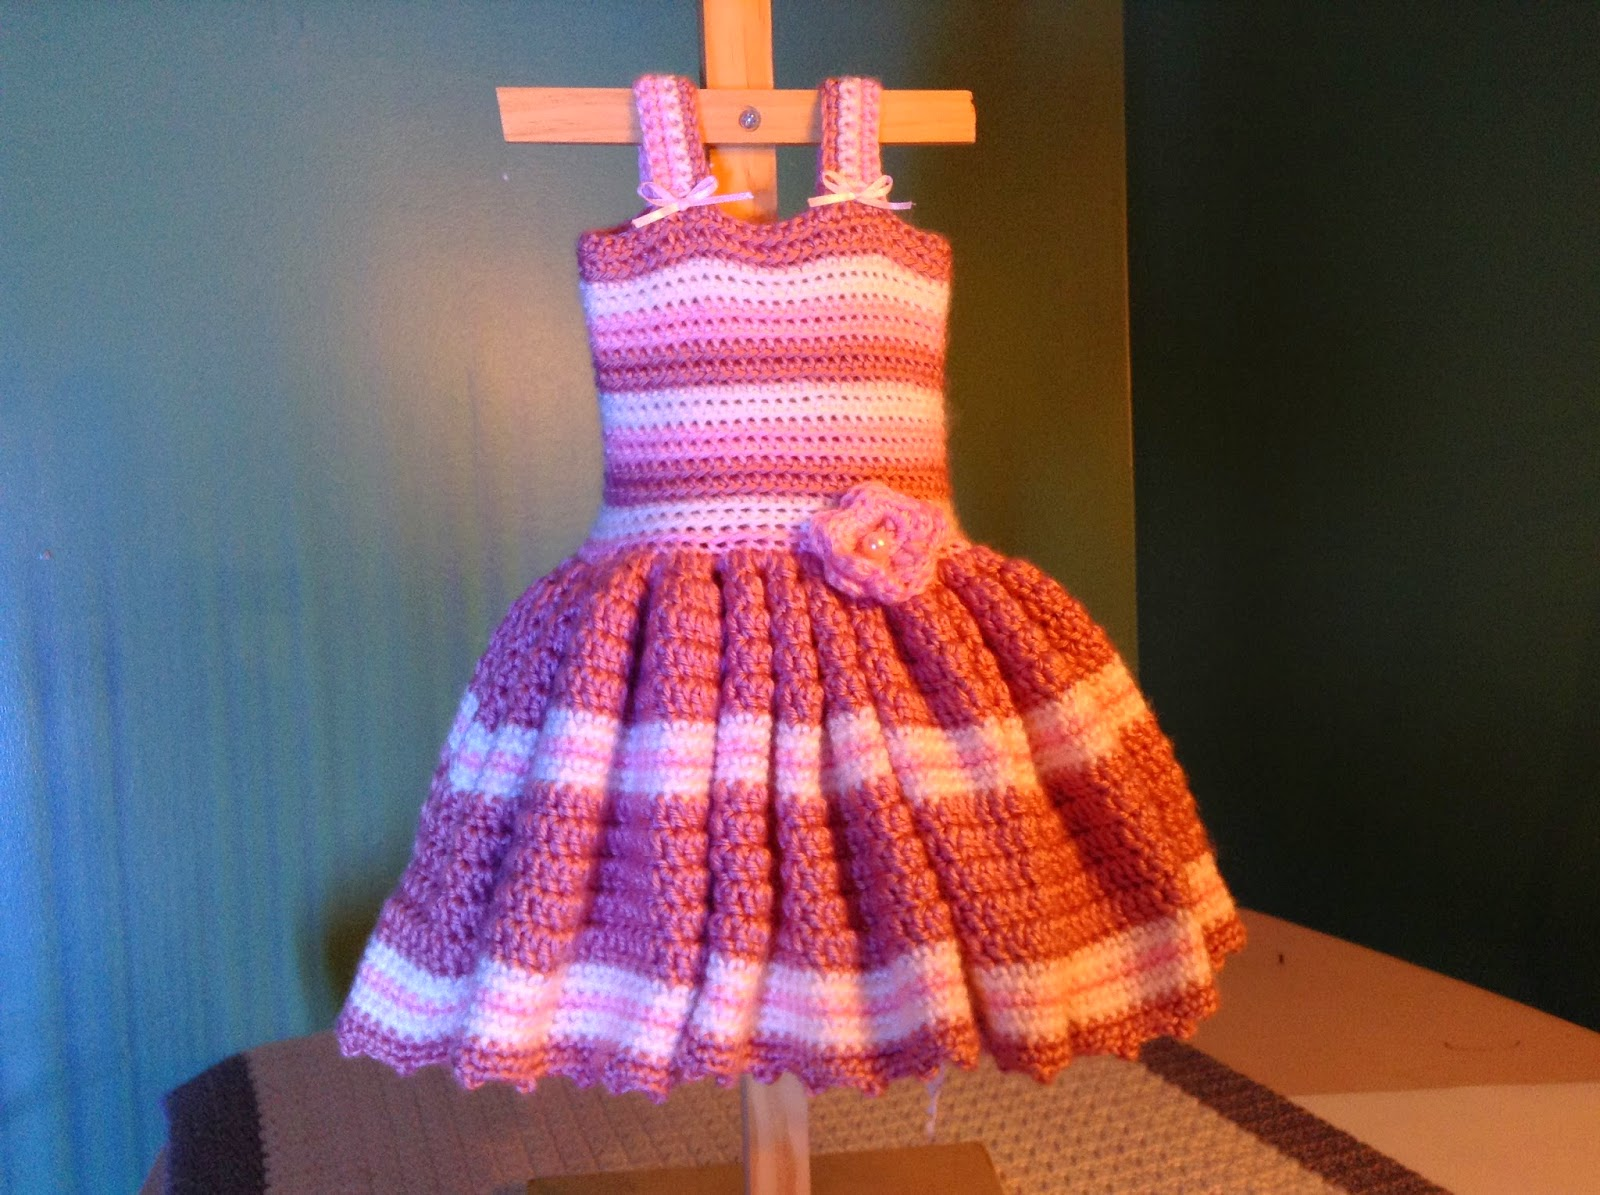 Crochet Stitches For Dresses : ... Baby Crochet Dress Patterns - Inspiration and Ideas: Free Patterns